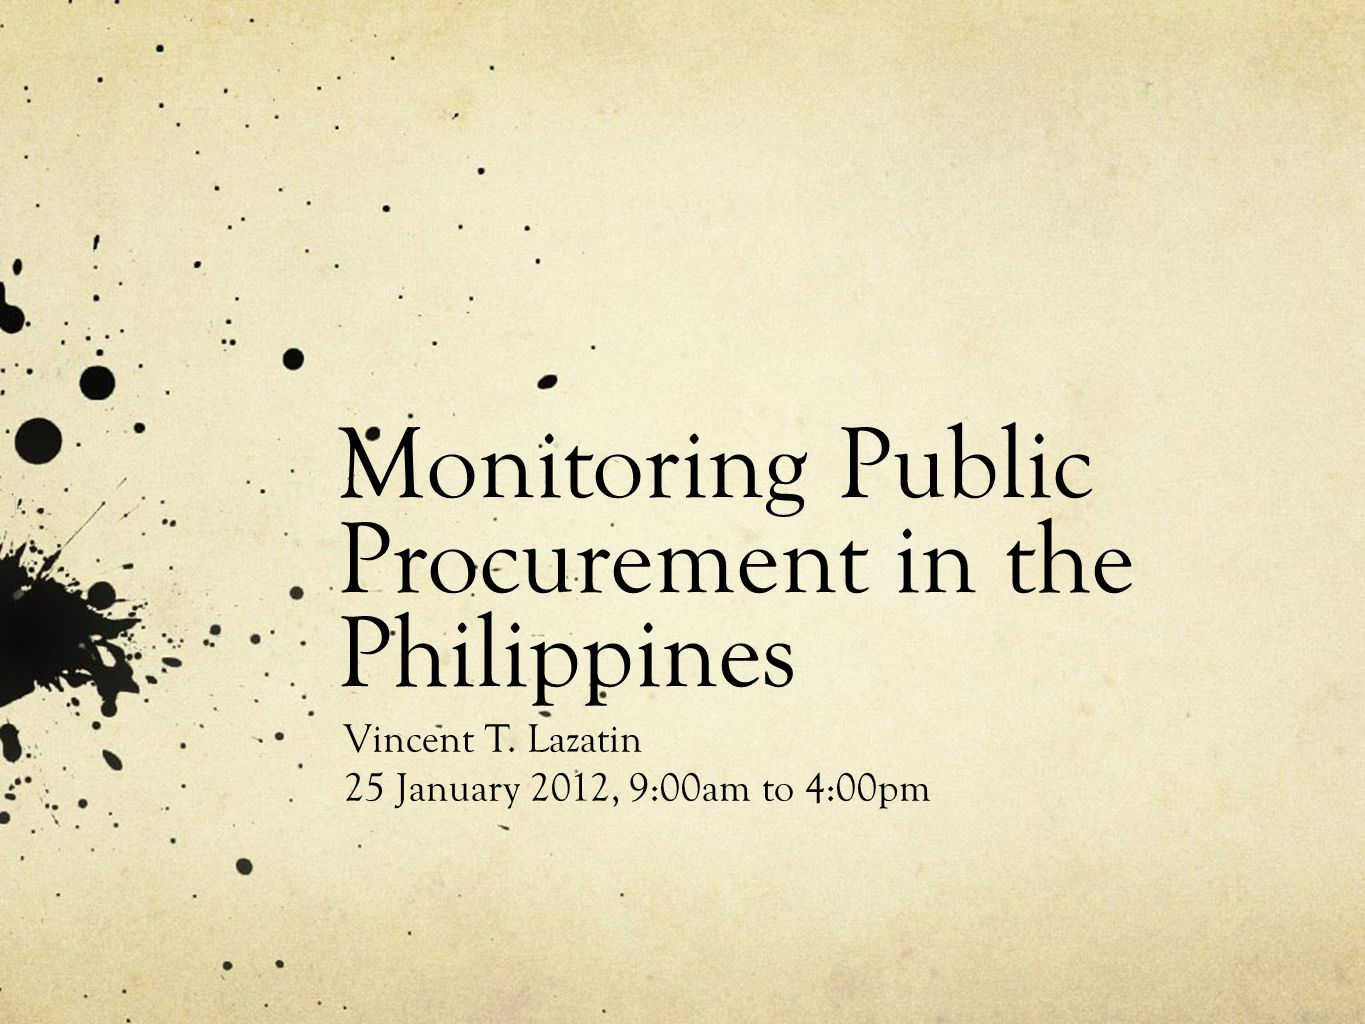 Monitoring Public Procurement in the Philippines Vincent T. Lazatin 25 January 2012, 9:00am to 4:00pm